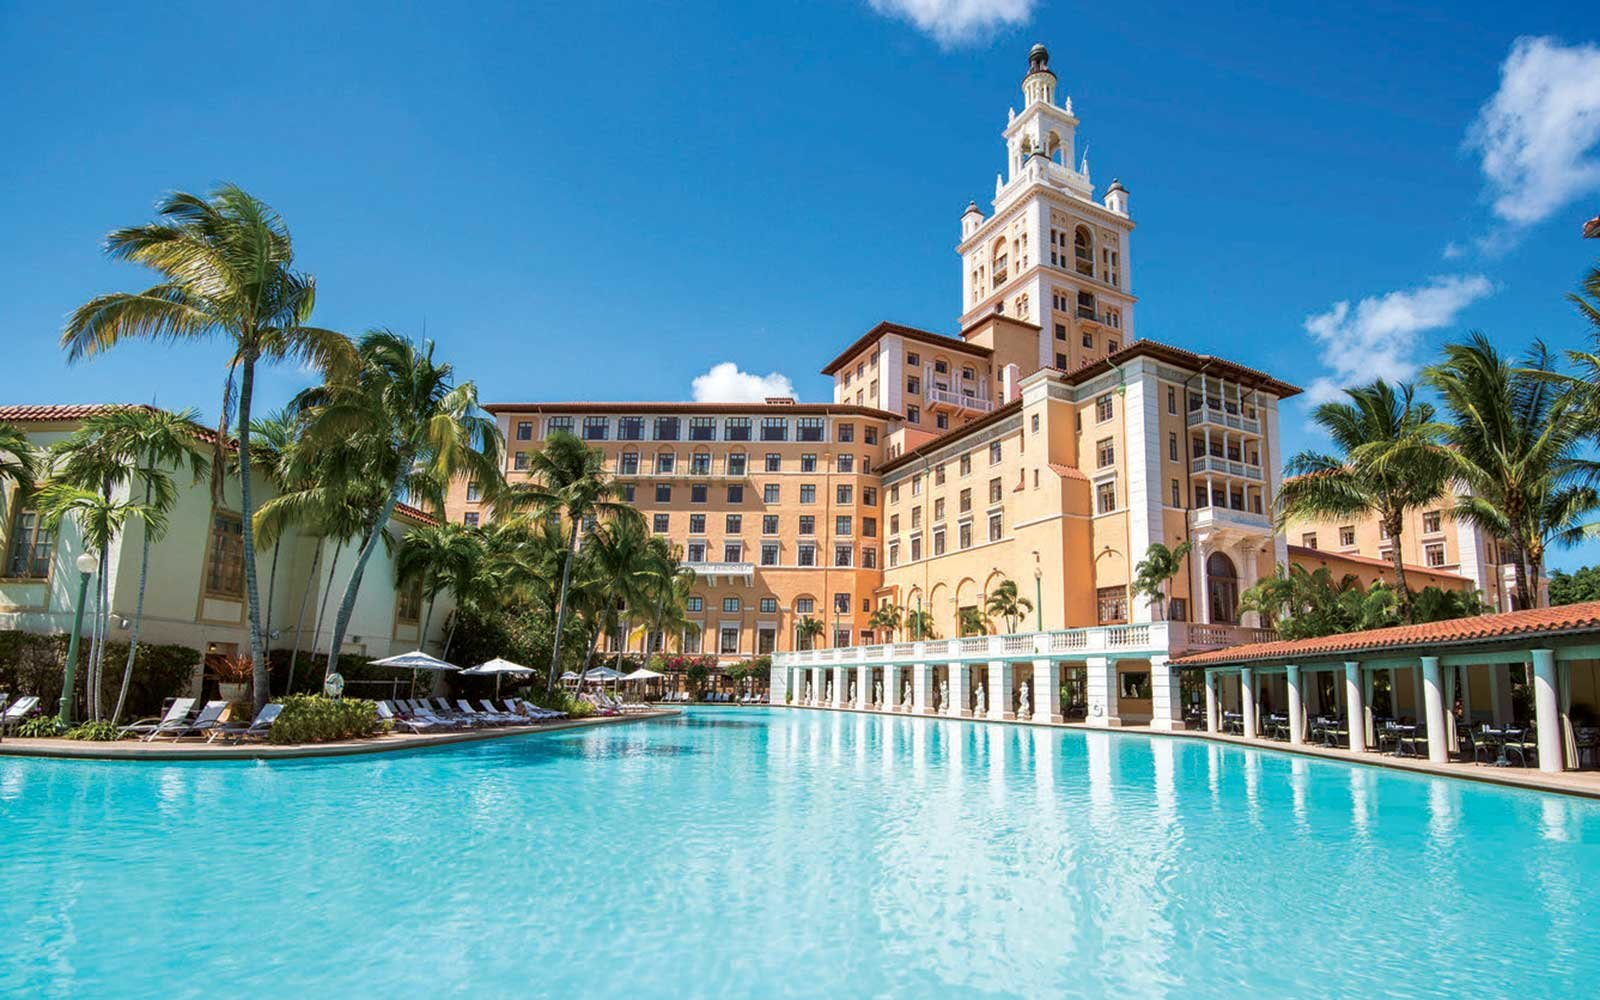 Biltmore Hotel In Florida